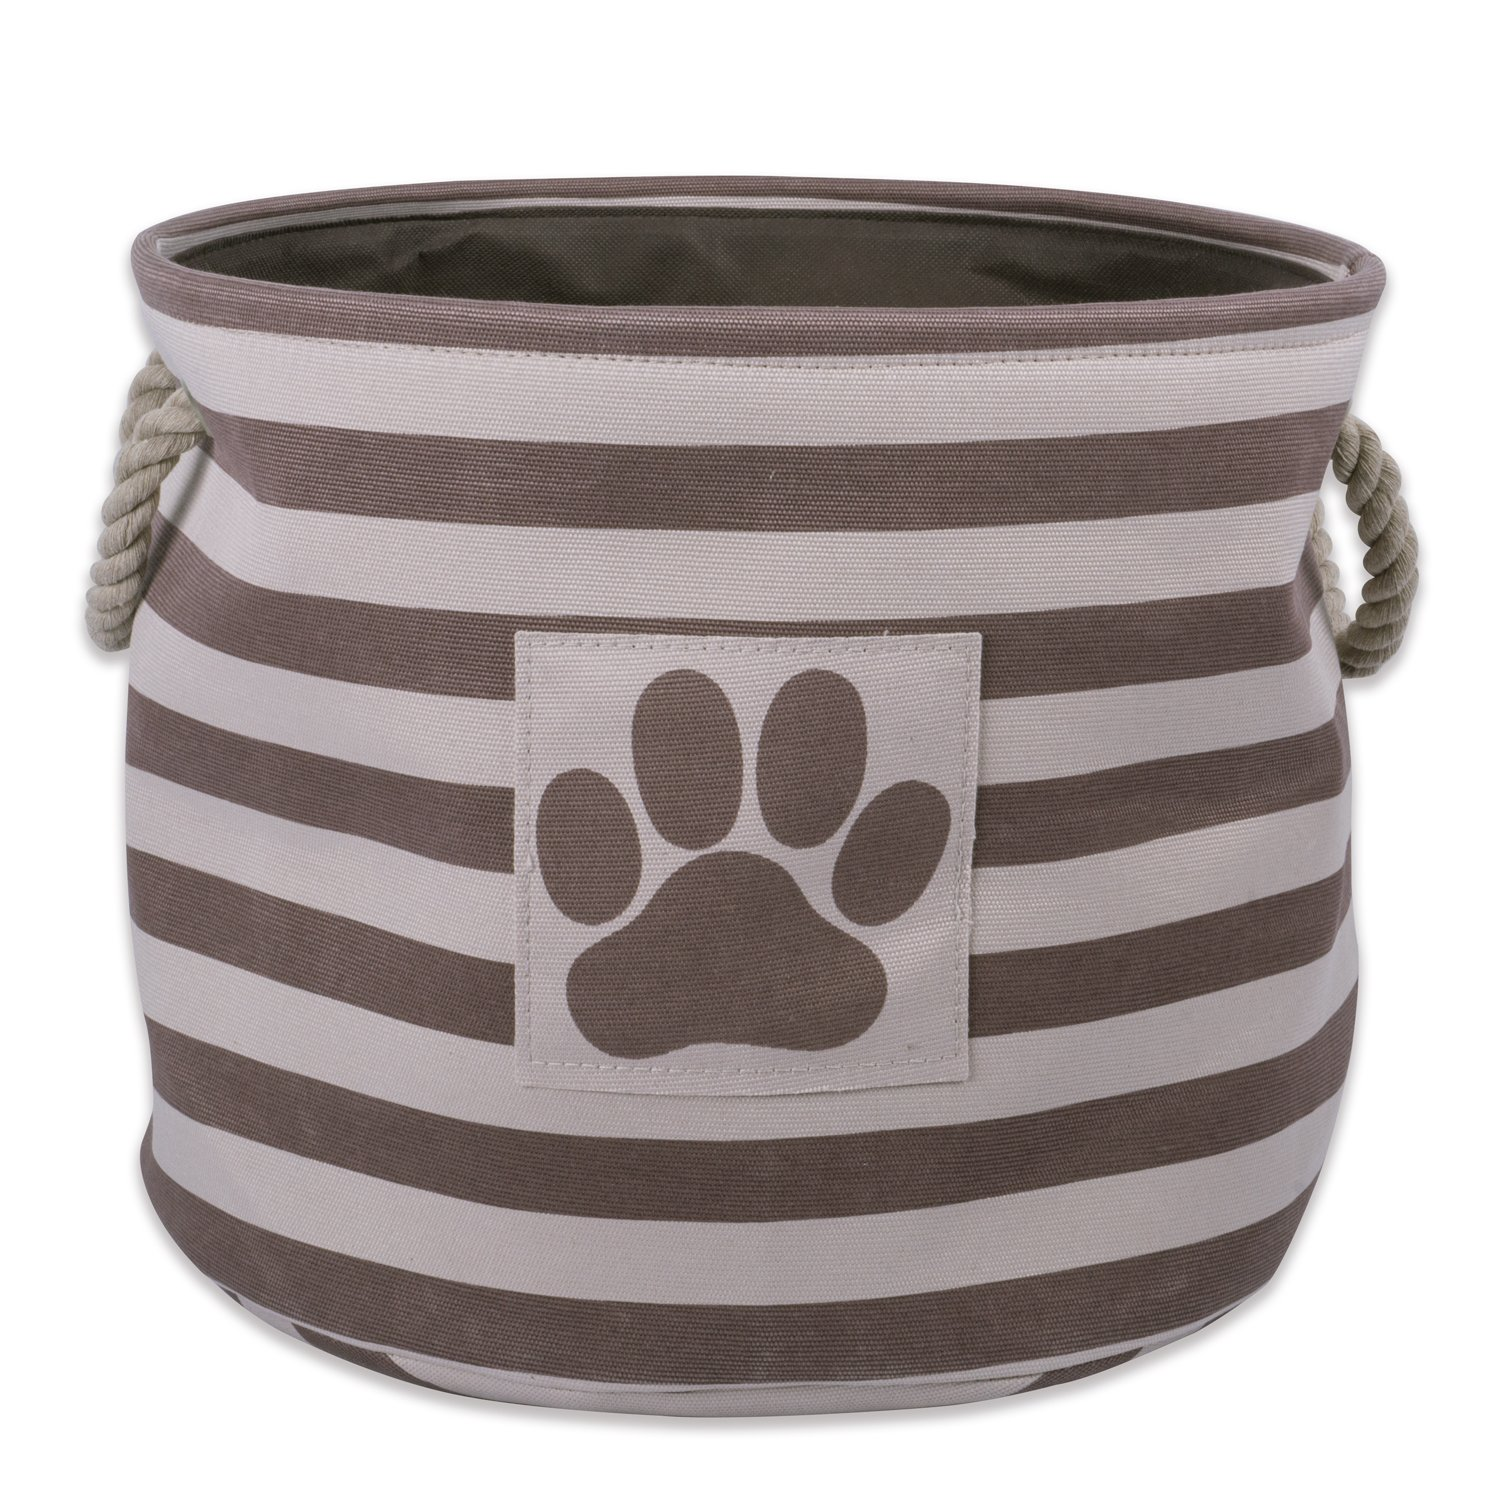 Bone Dry DII Small Round Pet Toy and Accessory Storage Bin, 12''(Dia) x9(H), Collapsible Organizer Storage Basket for Home Décor, Pet Toy, Blankets, Leashes and Food-Brown Stripes